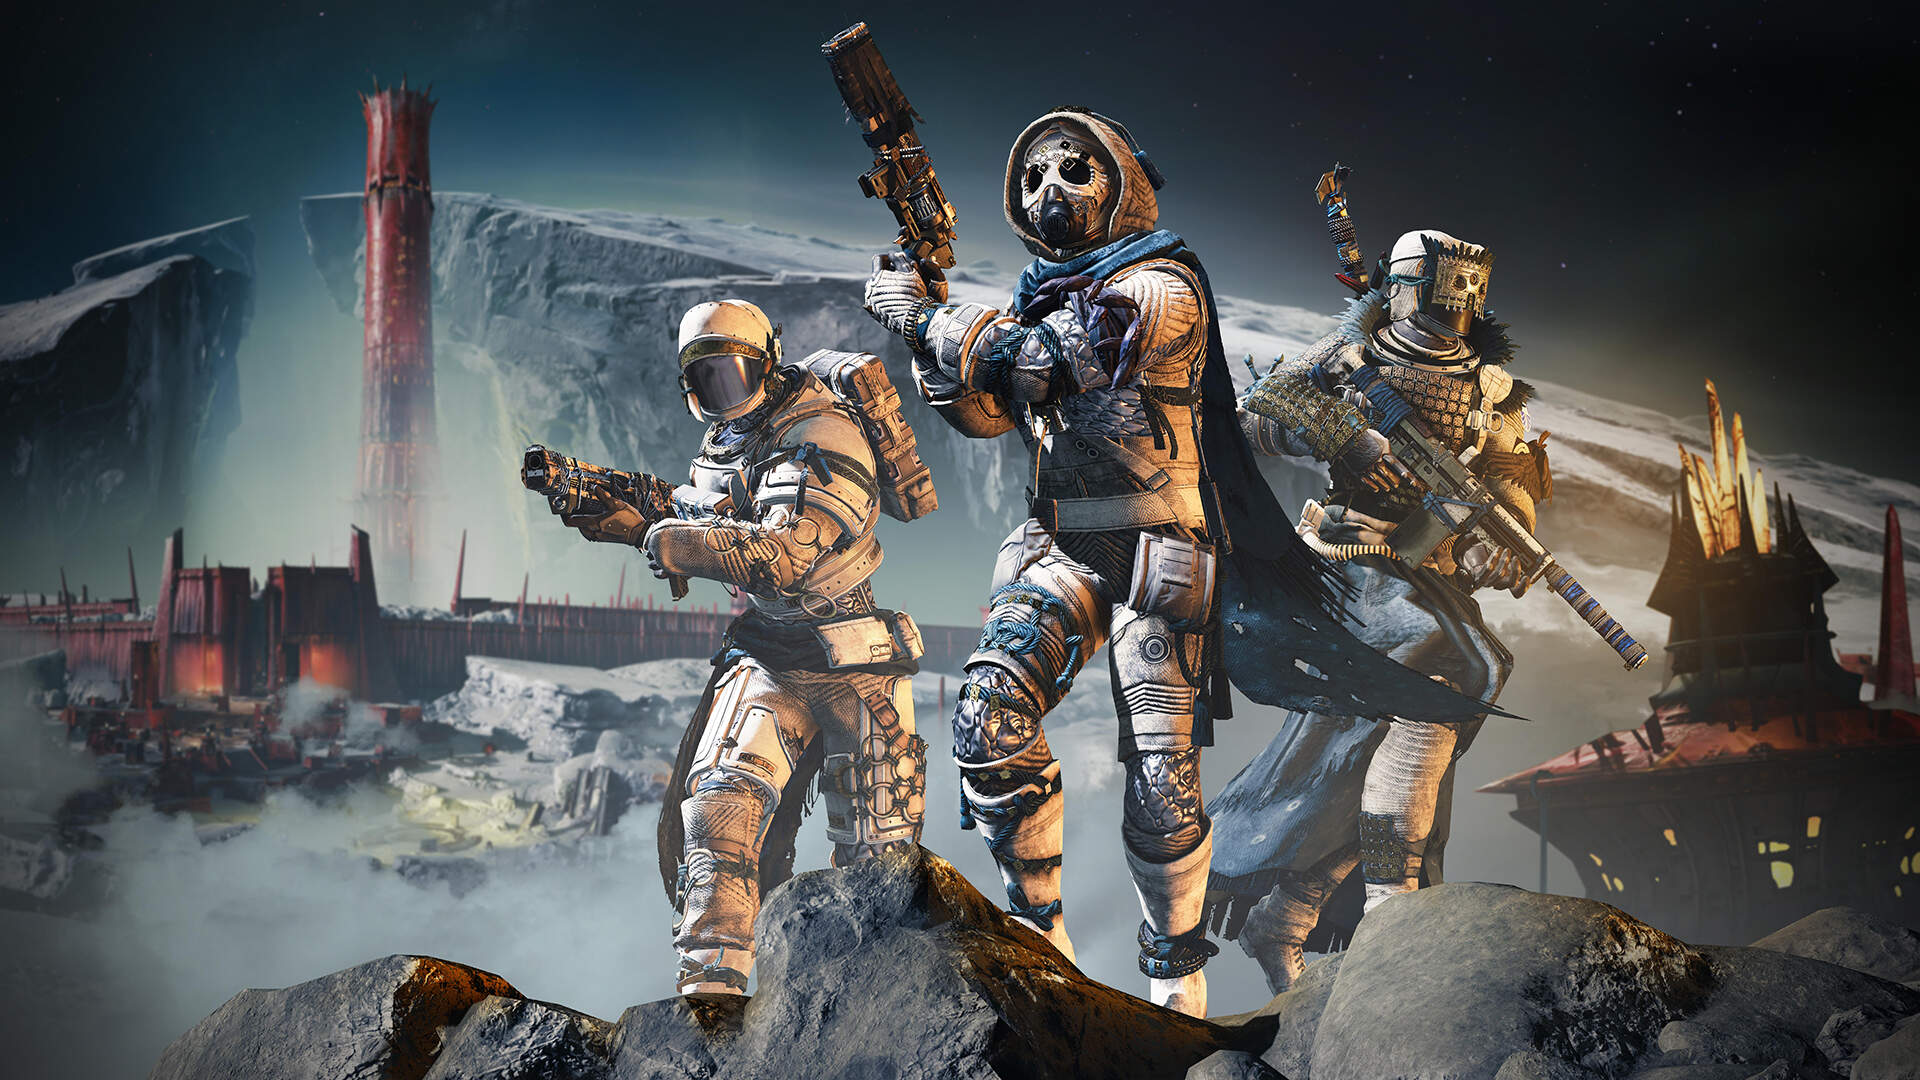 Destiny 2 Moon Lost Sector Locations - Where to Find All Lost Sectors on the Moon